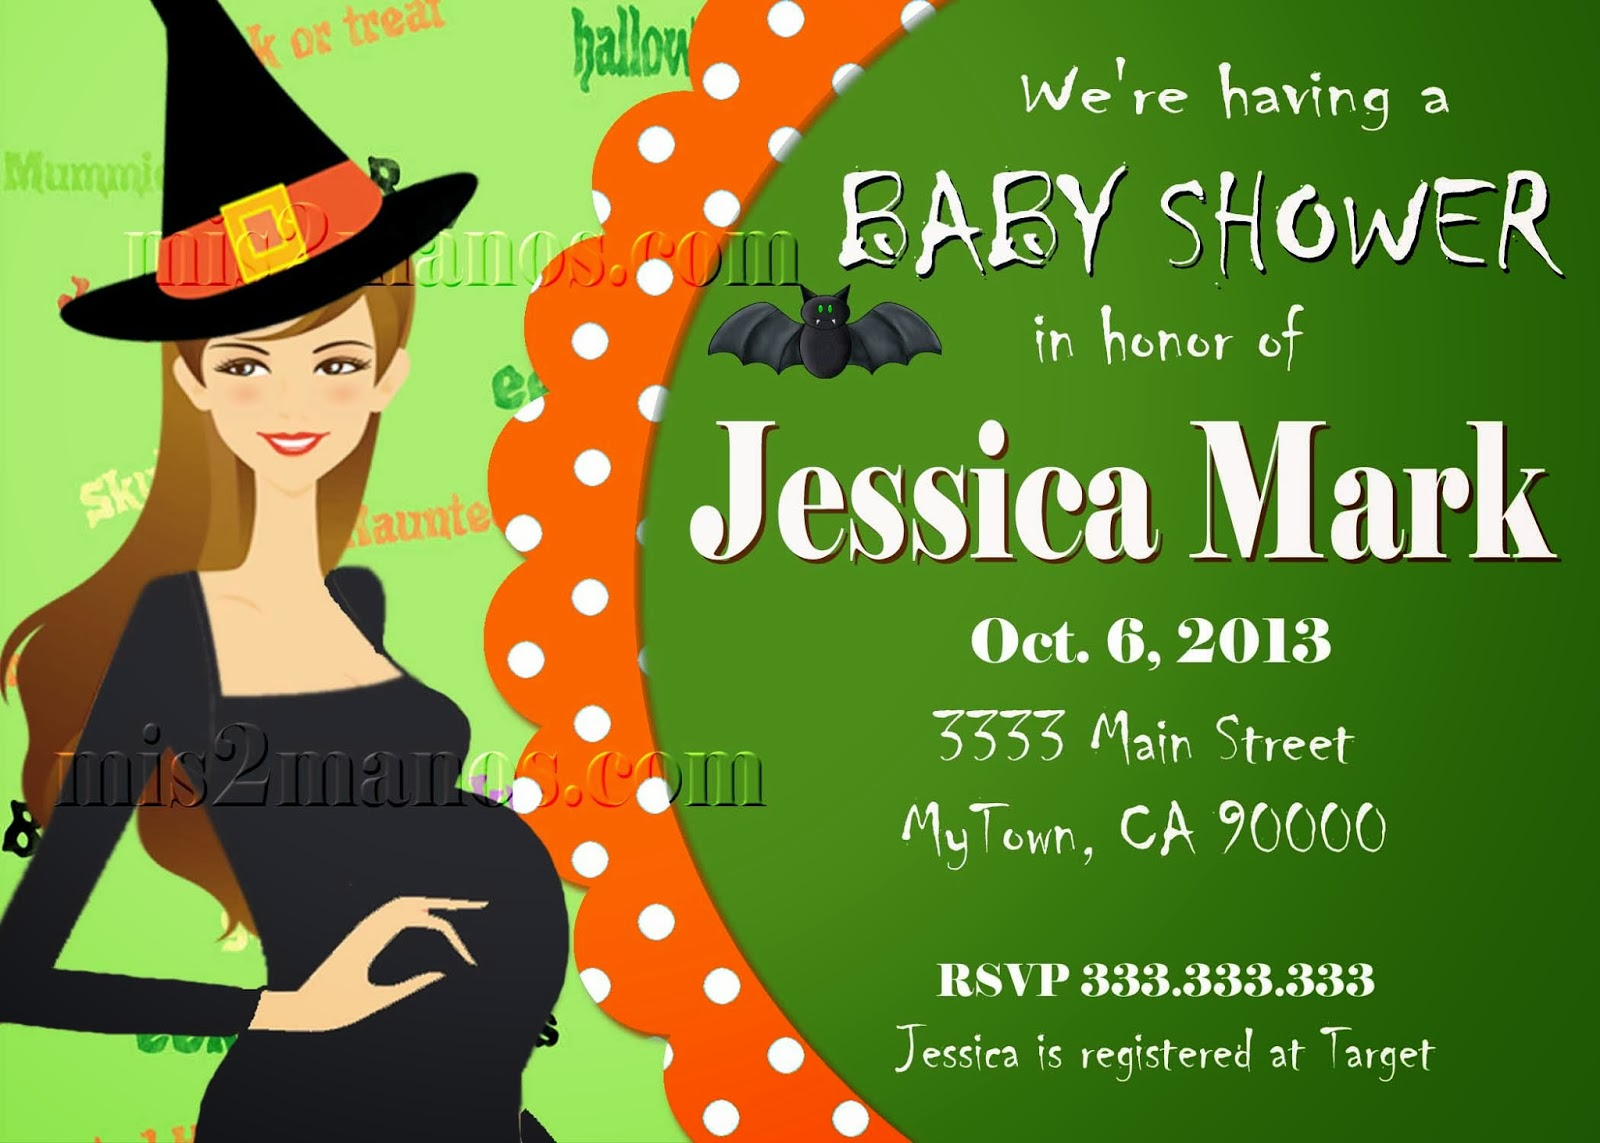 Baby shower invitations for adults has